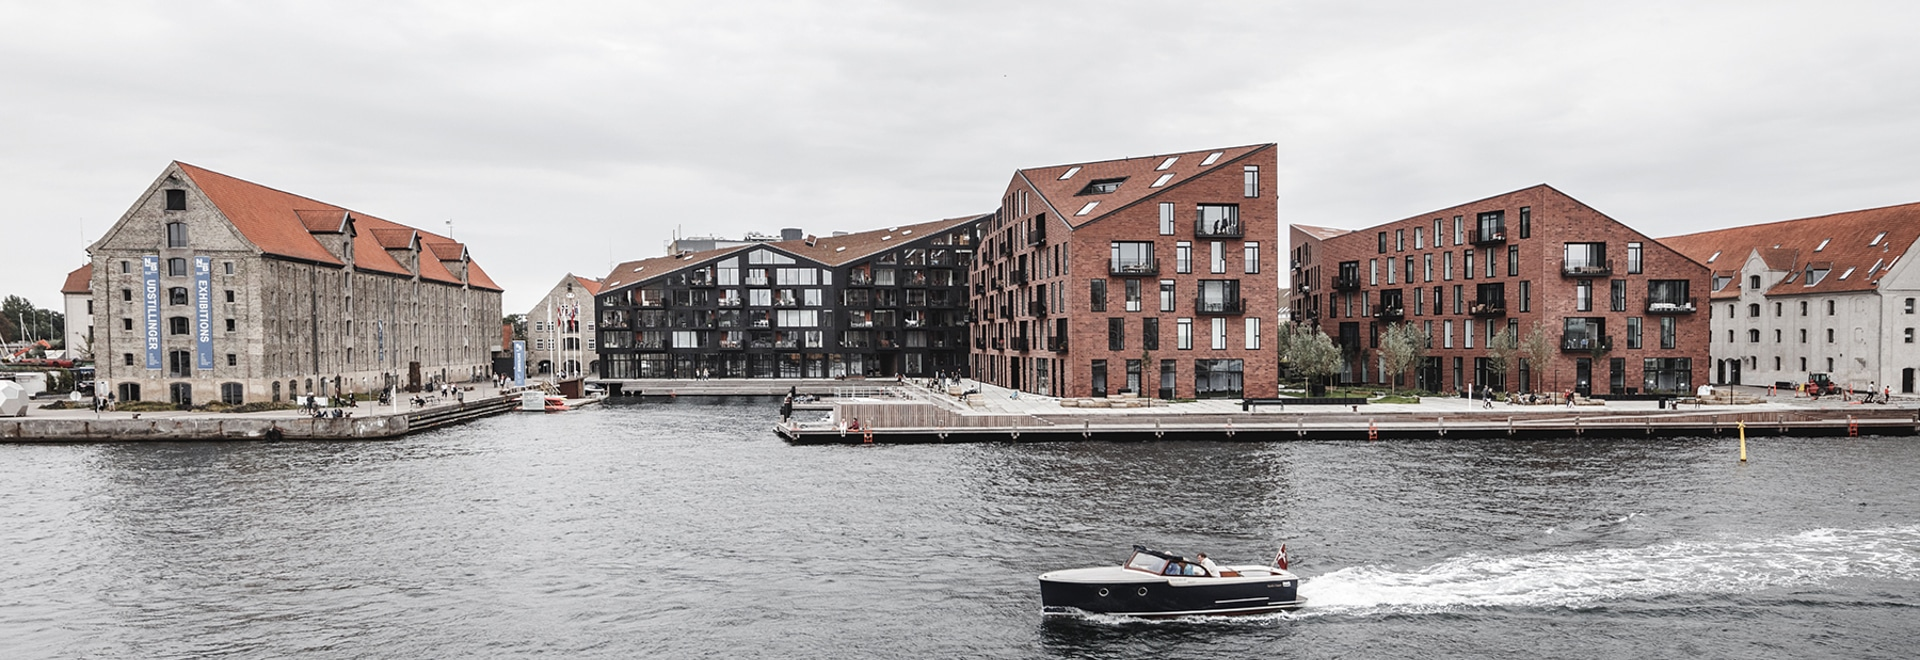 COBE + vilhelm lauritzen mimics existing warehouses in copenhagen housing project